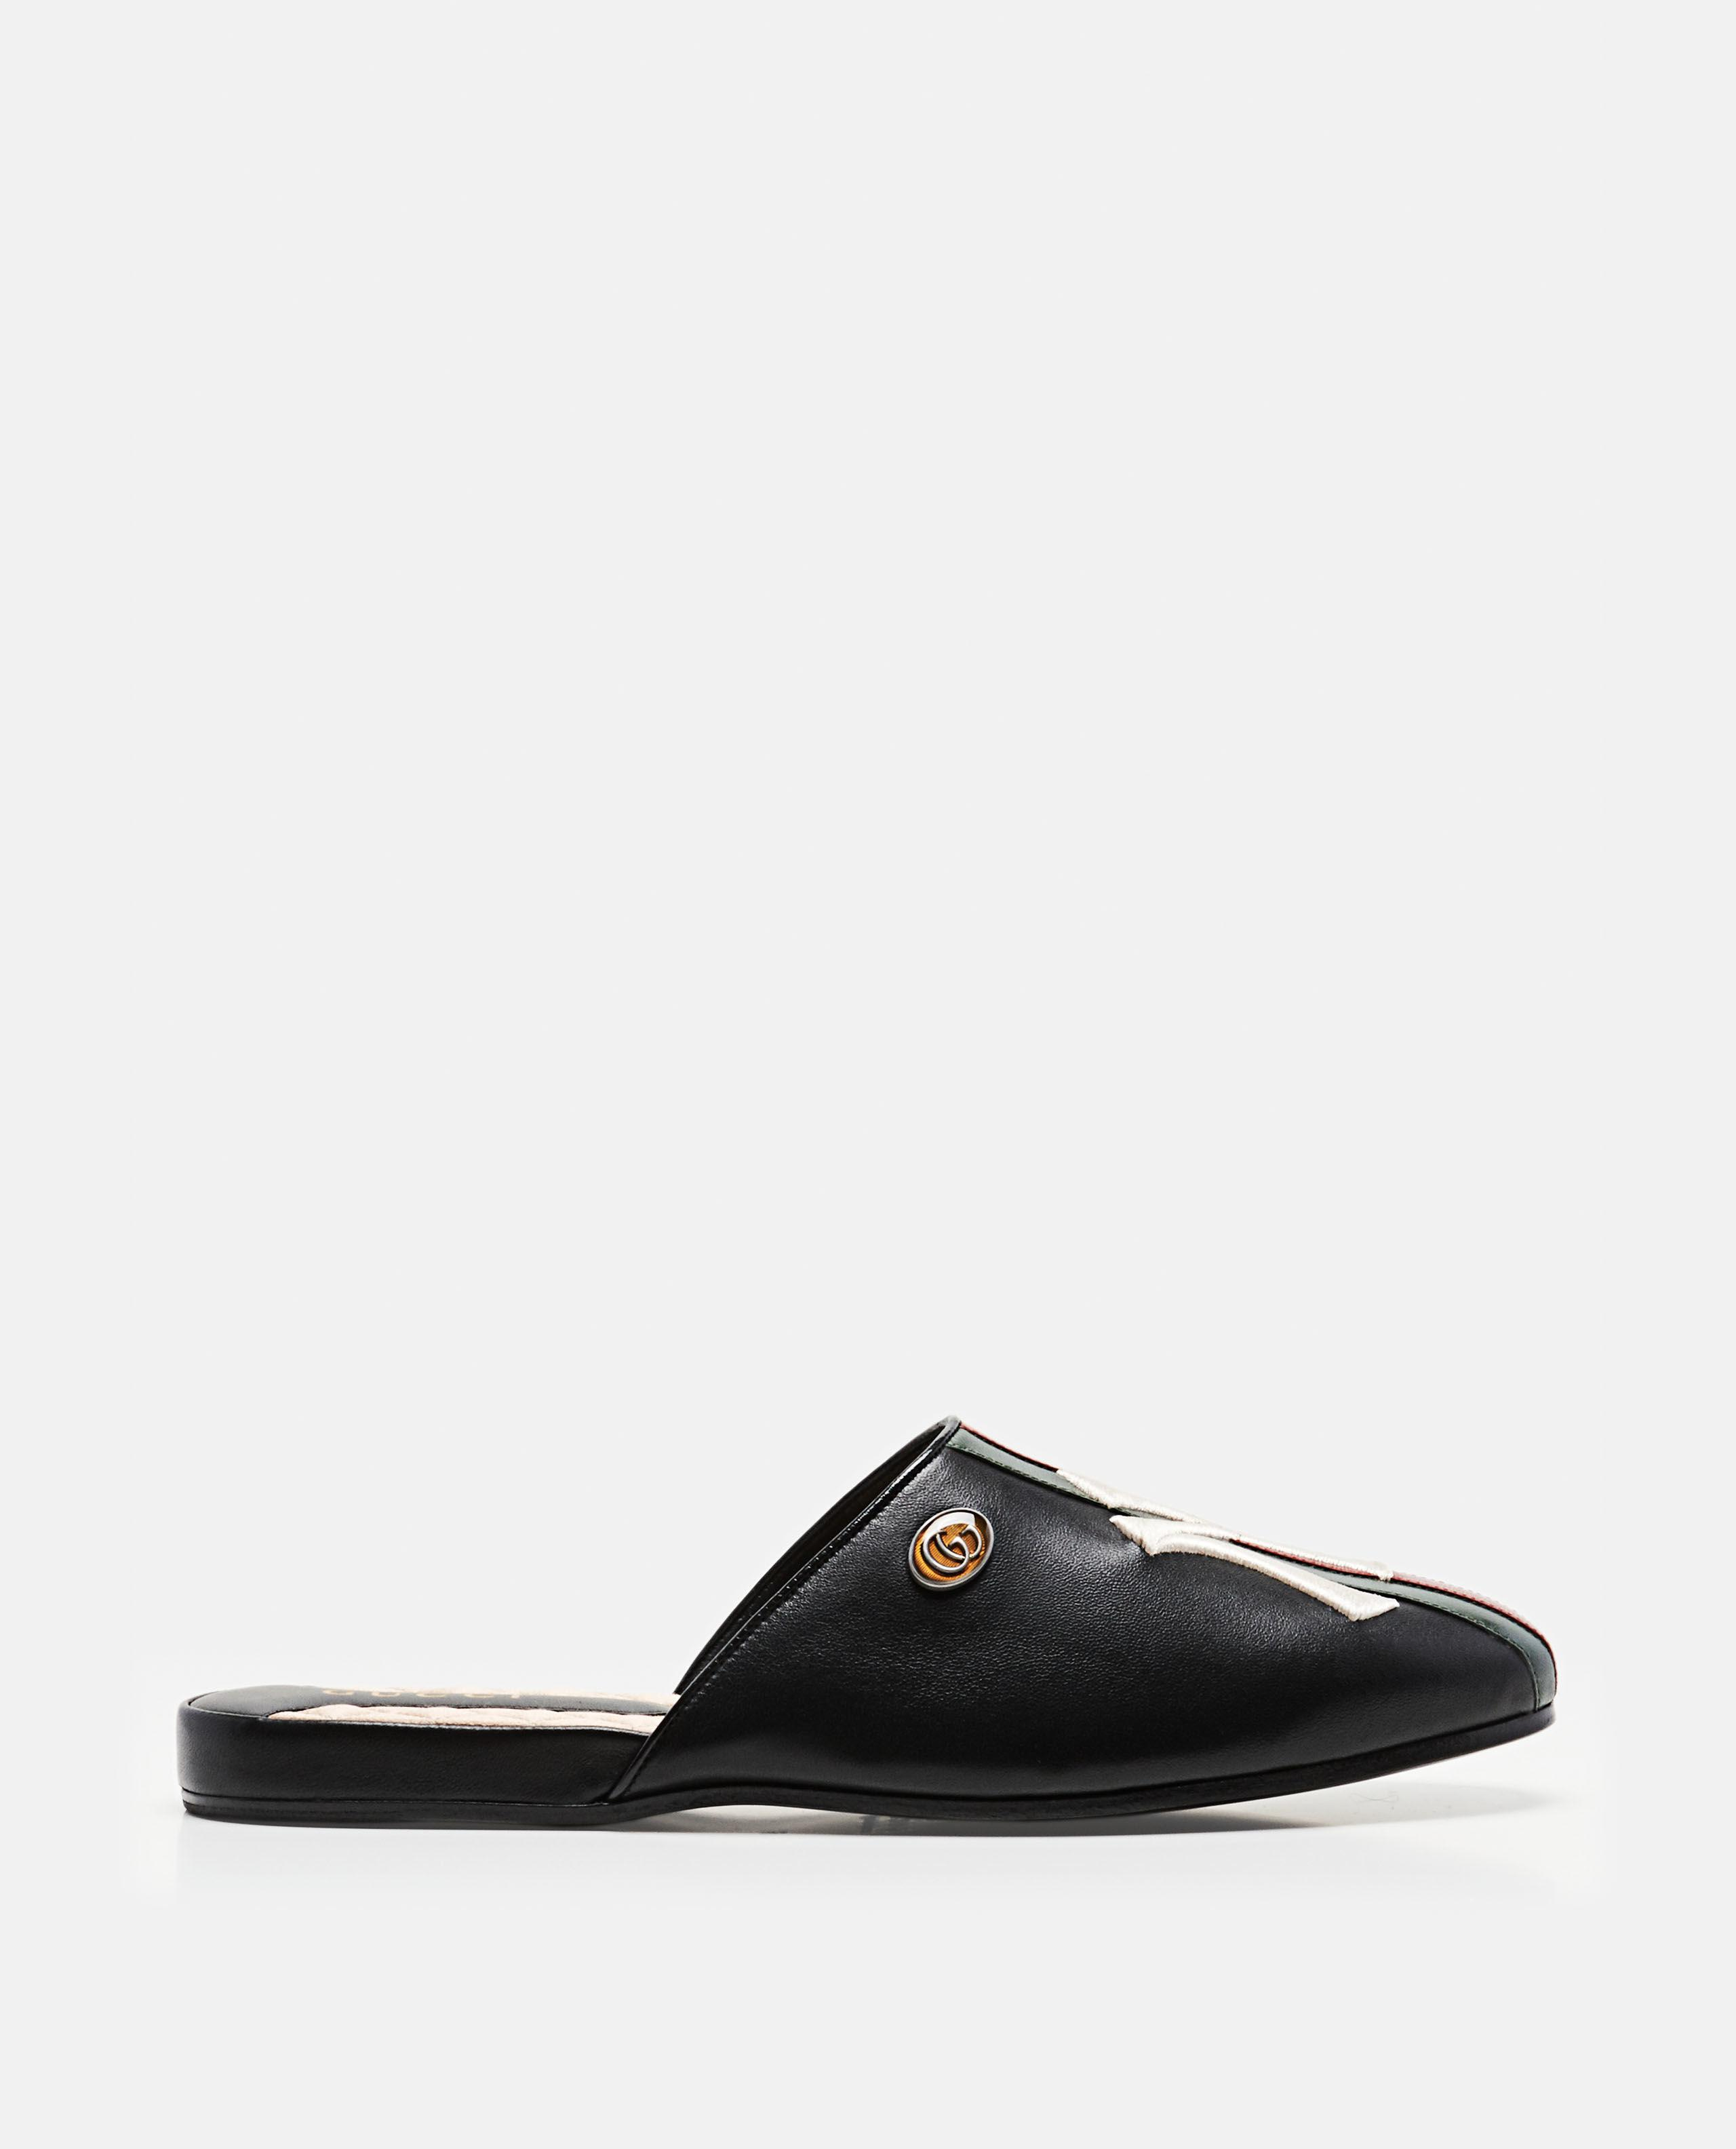 382ac799a Gucci Leather Slipper With Ny Yankees Patch in Black for Men - Lyst